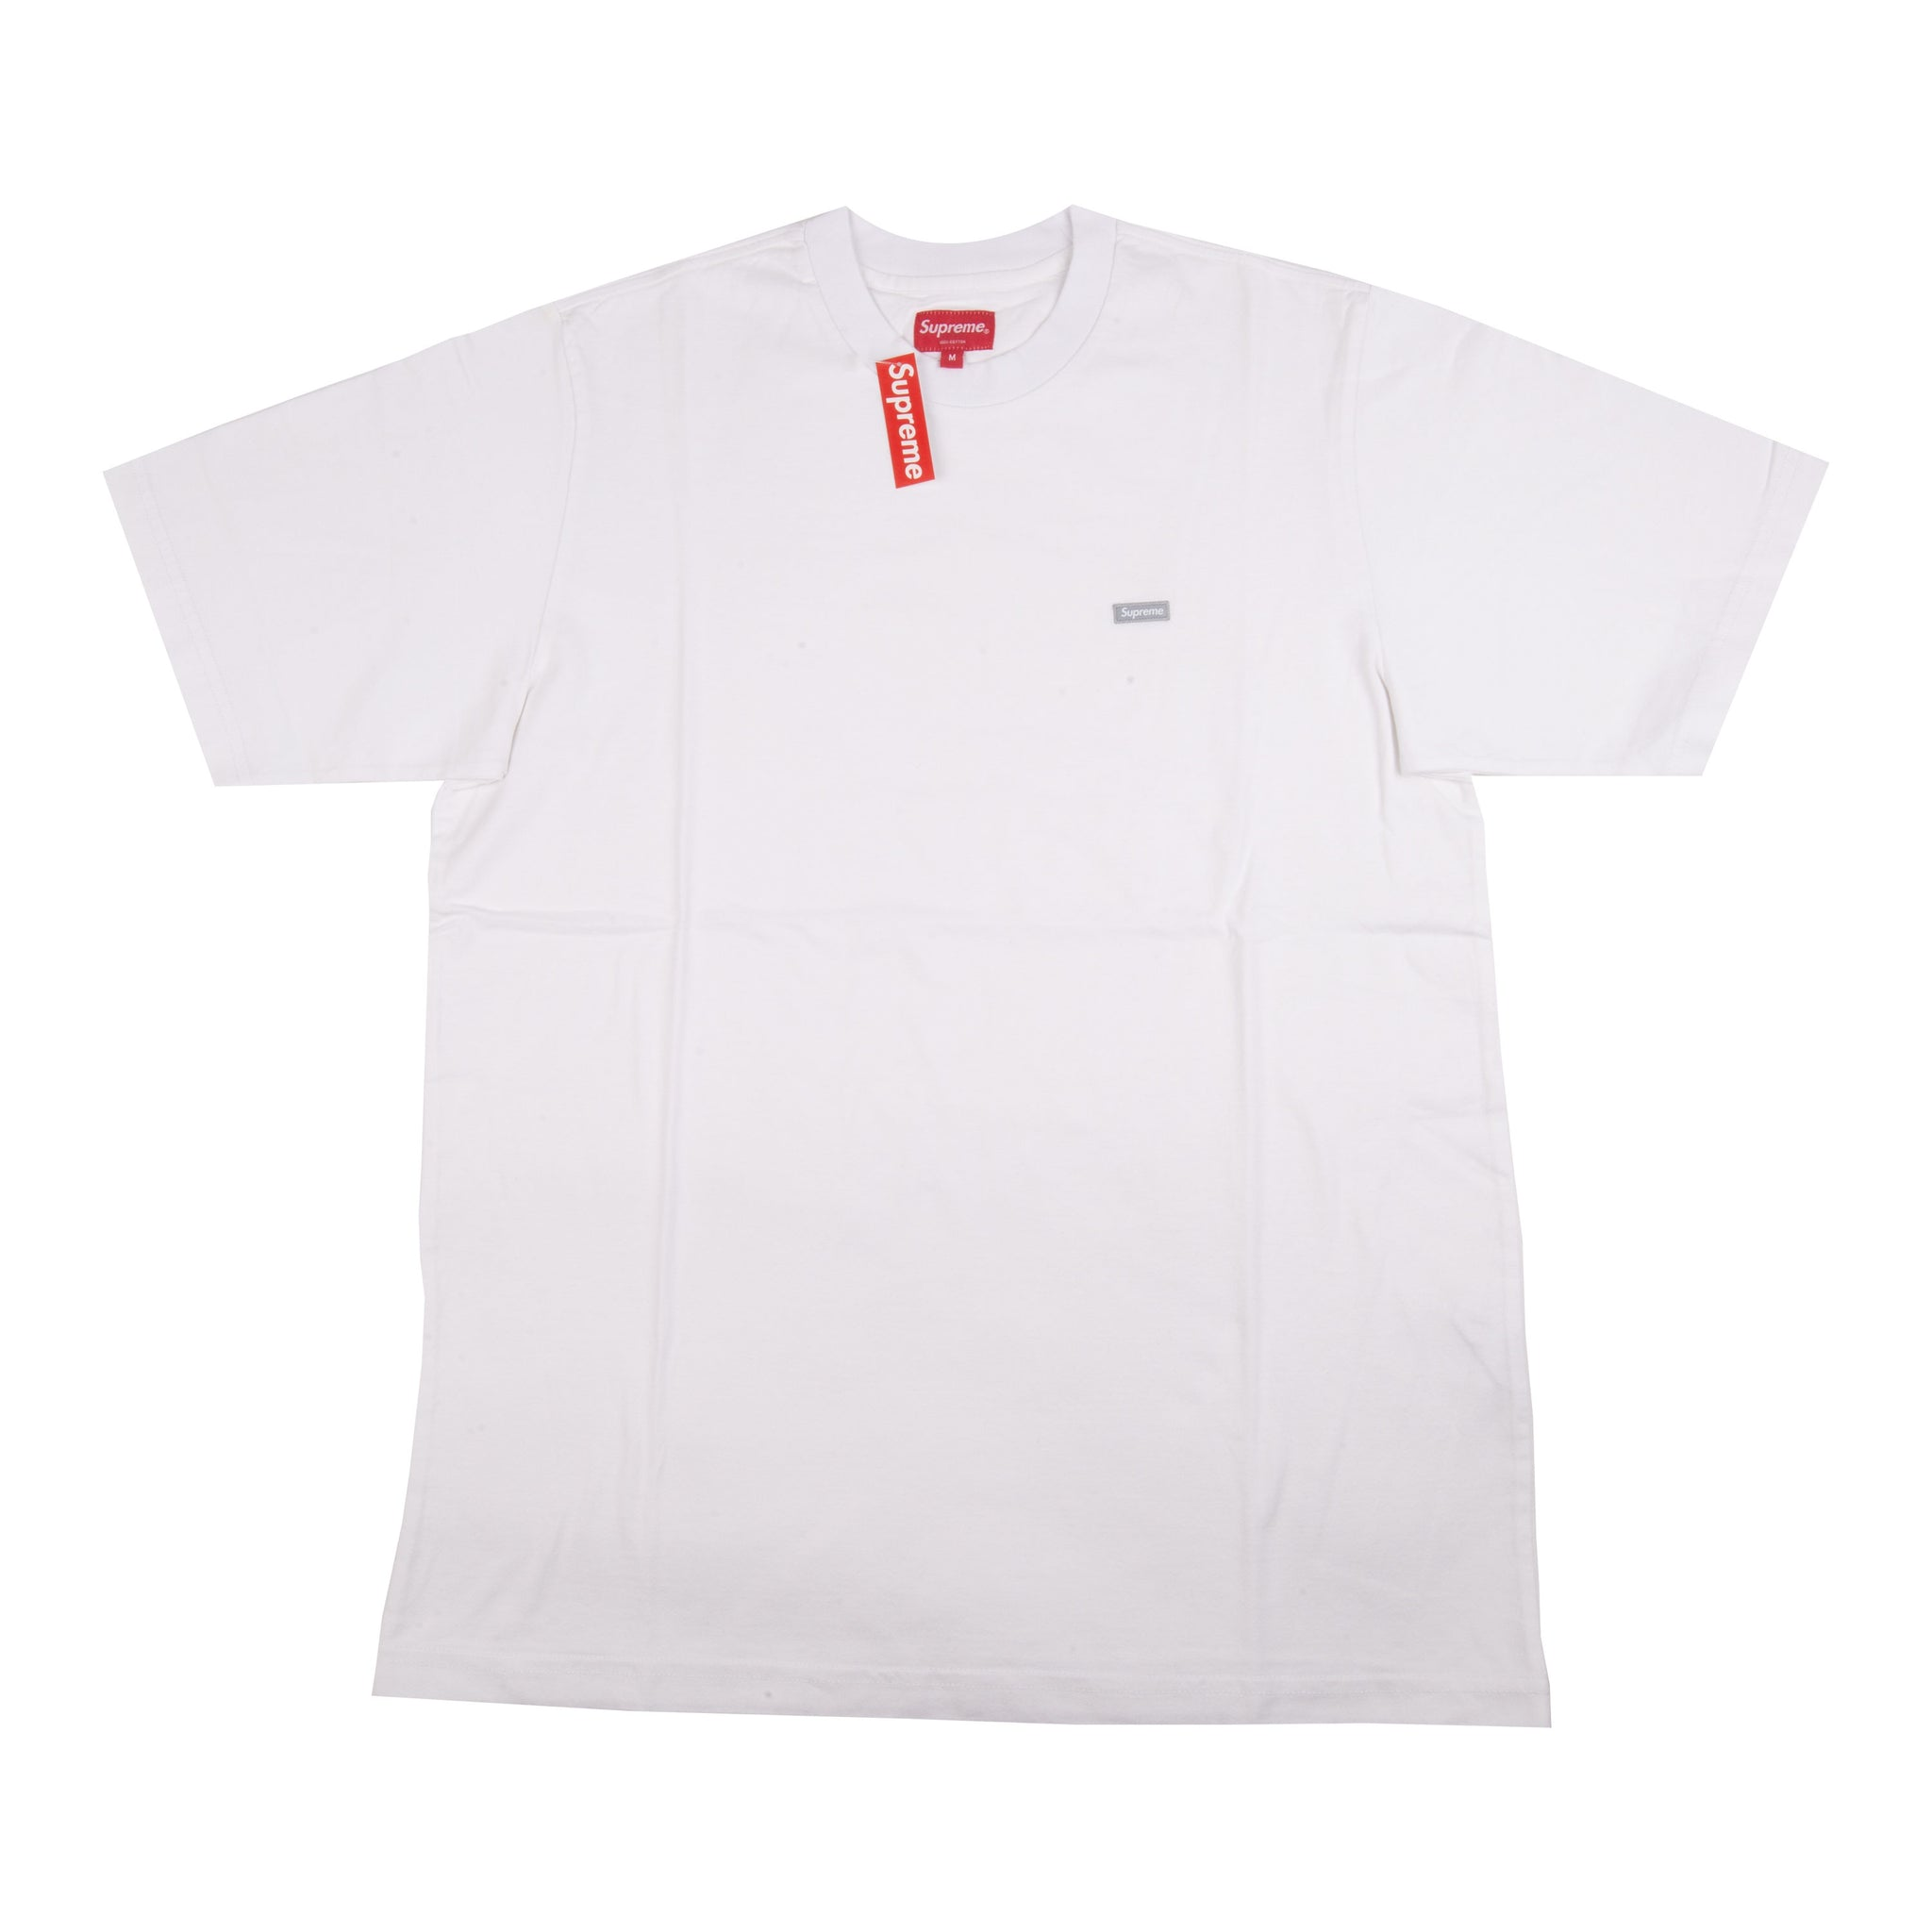 Supreme White Reflective Small Box Logo Tee